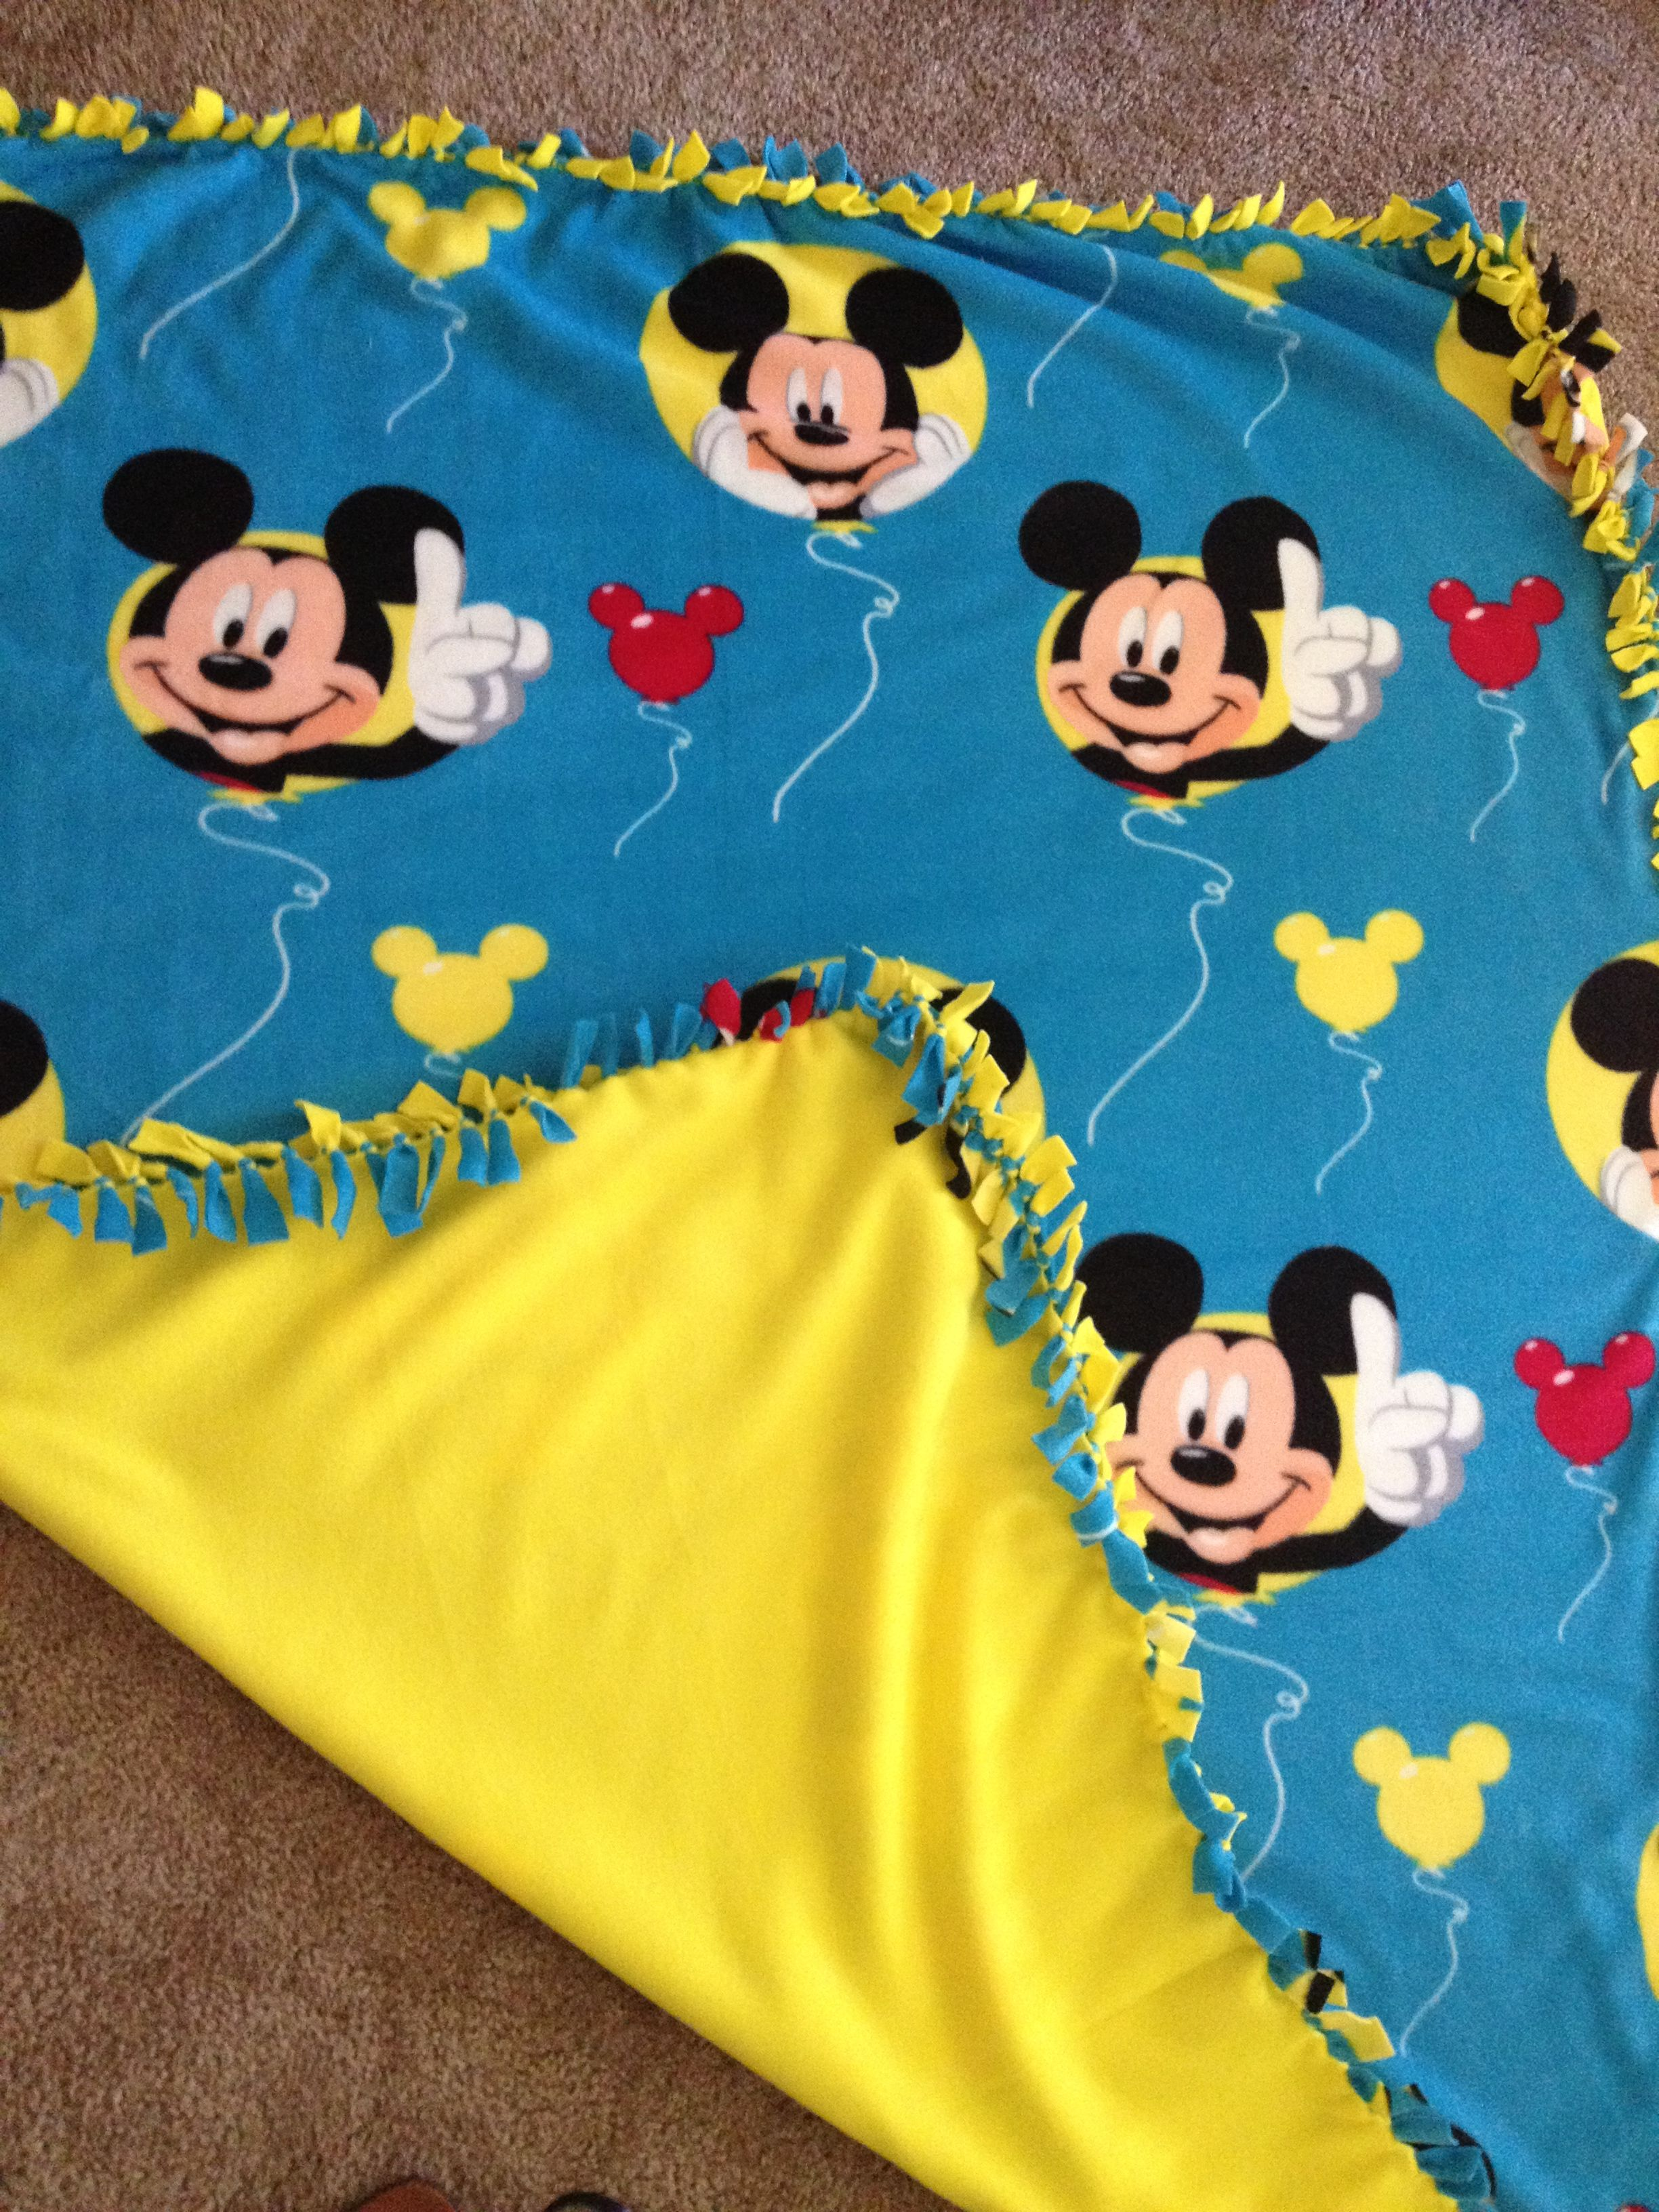 Pin By Renee Ambriz On From My Heart To You Diy Baby Blankets No Sew Diy Baby Blanket Mickey Mouse Quilt